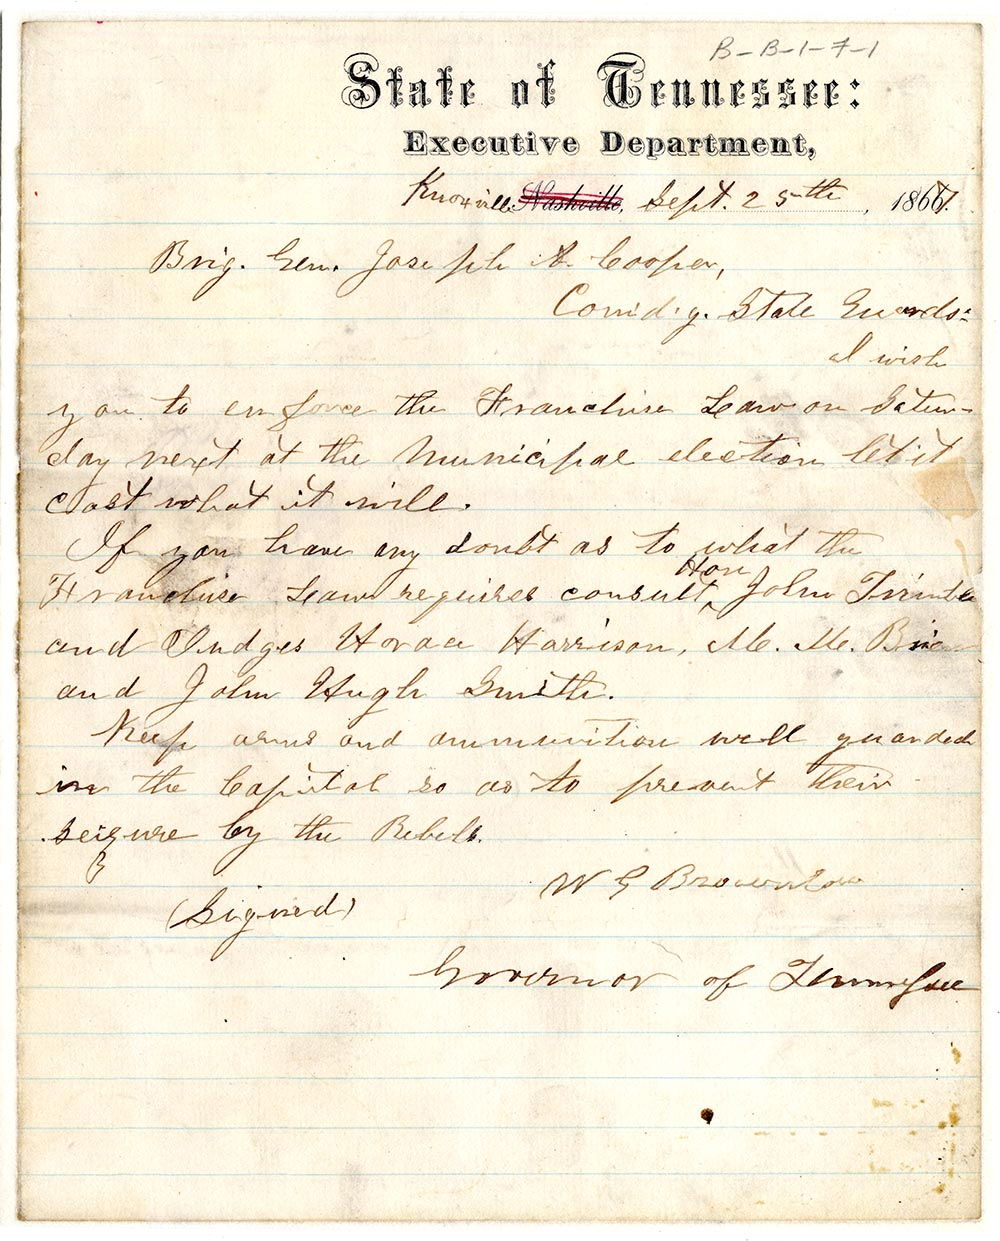 Letter from Governor William G. Brownlow ordering the state militia to enforce the franchise law